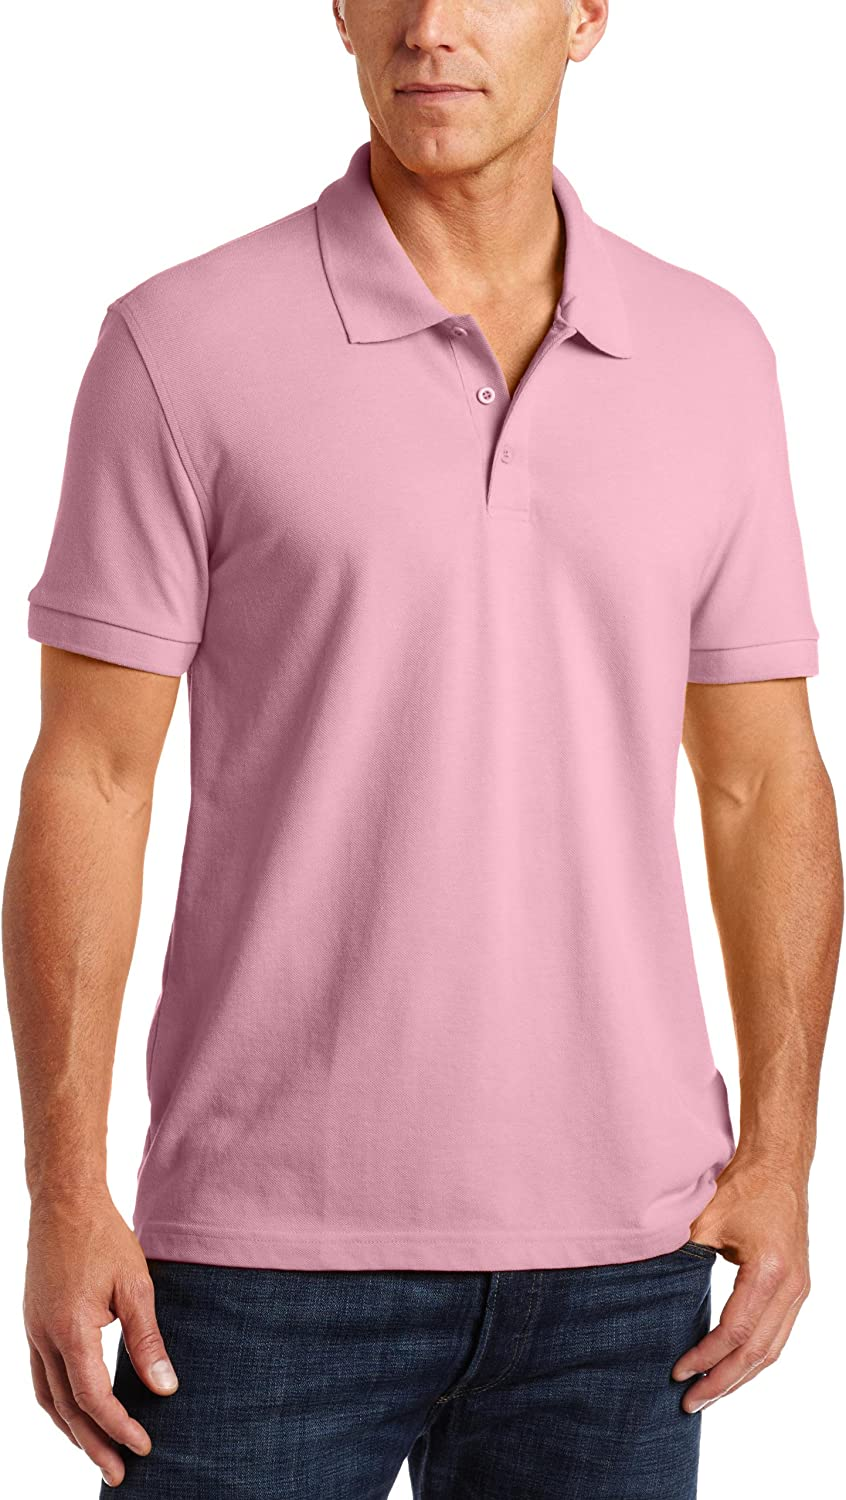 Classroom Mens Adult Unisex Short Sleeve Pique Polo